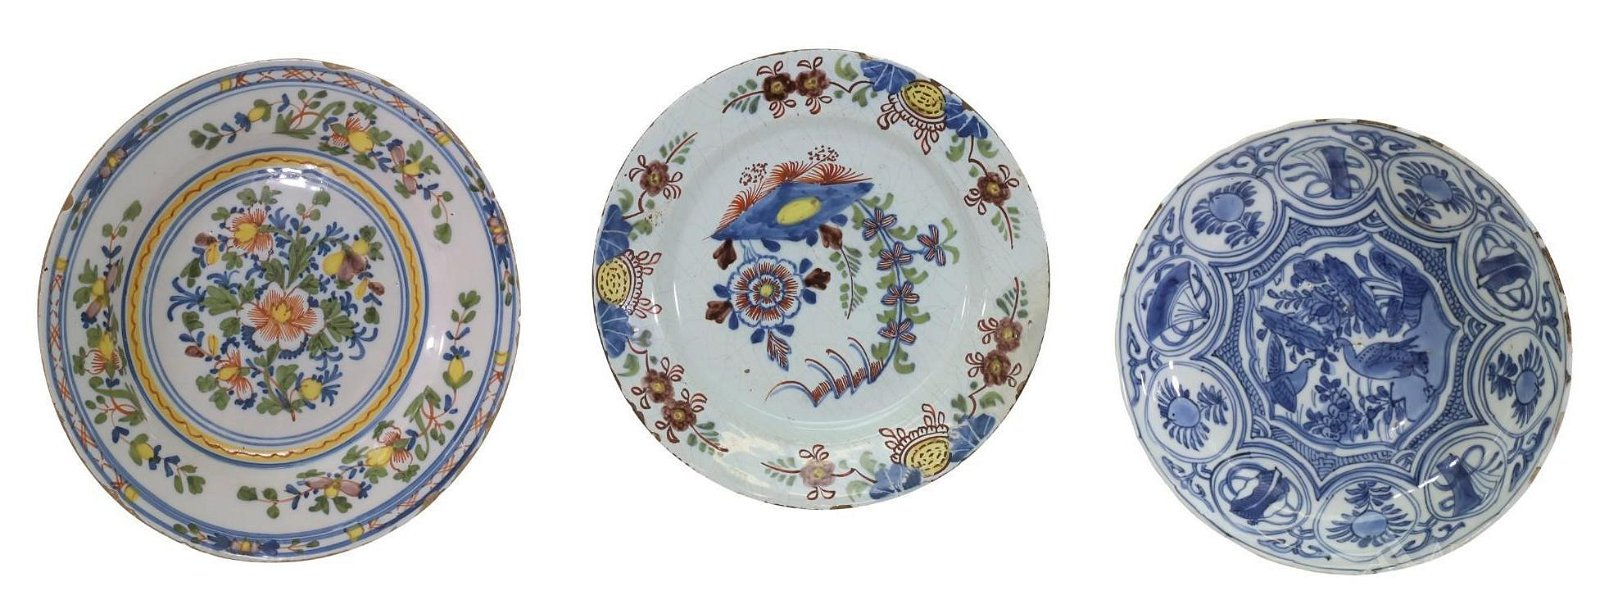 Polychrome Plate Grouping